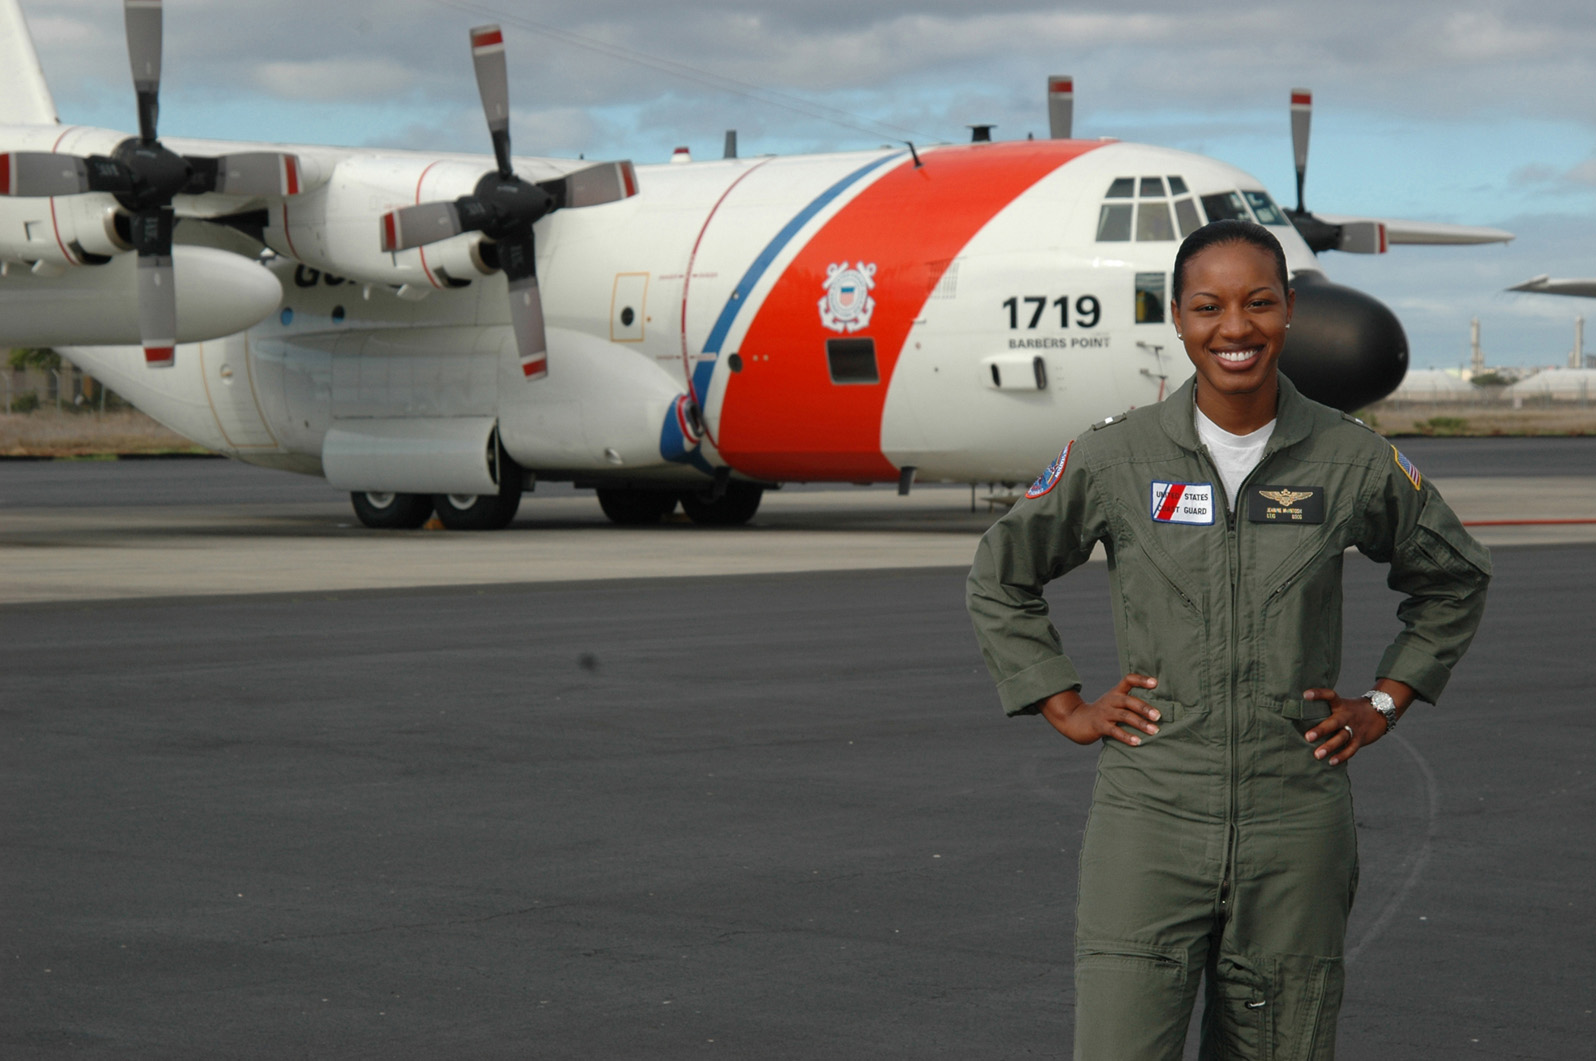 The first African American female pilot in the Coast Guard, LTJG Jeanine McIntosh poses in front of her HC-130.